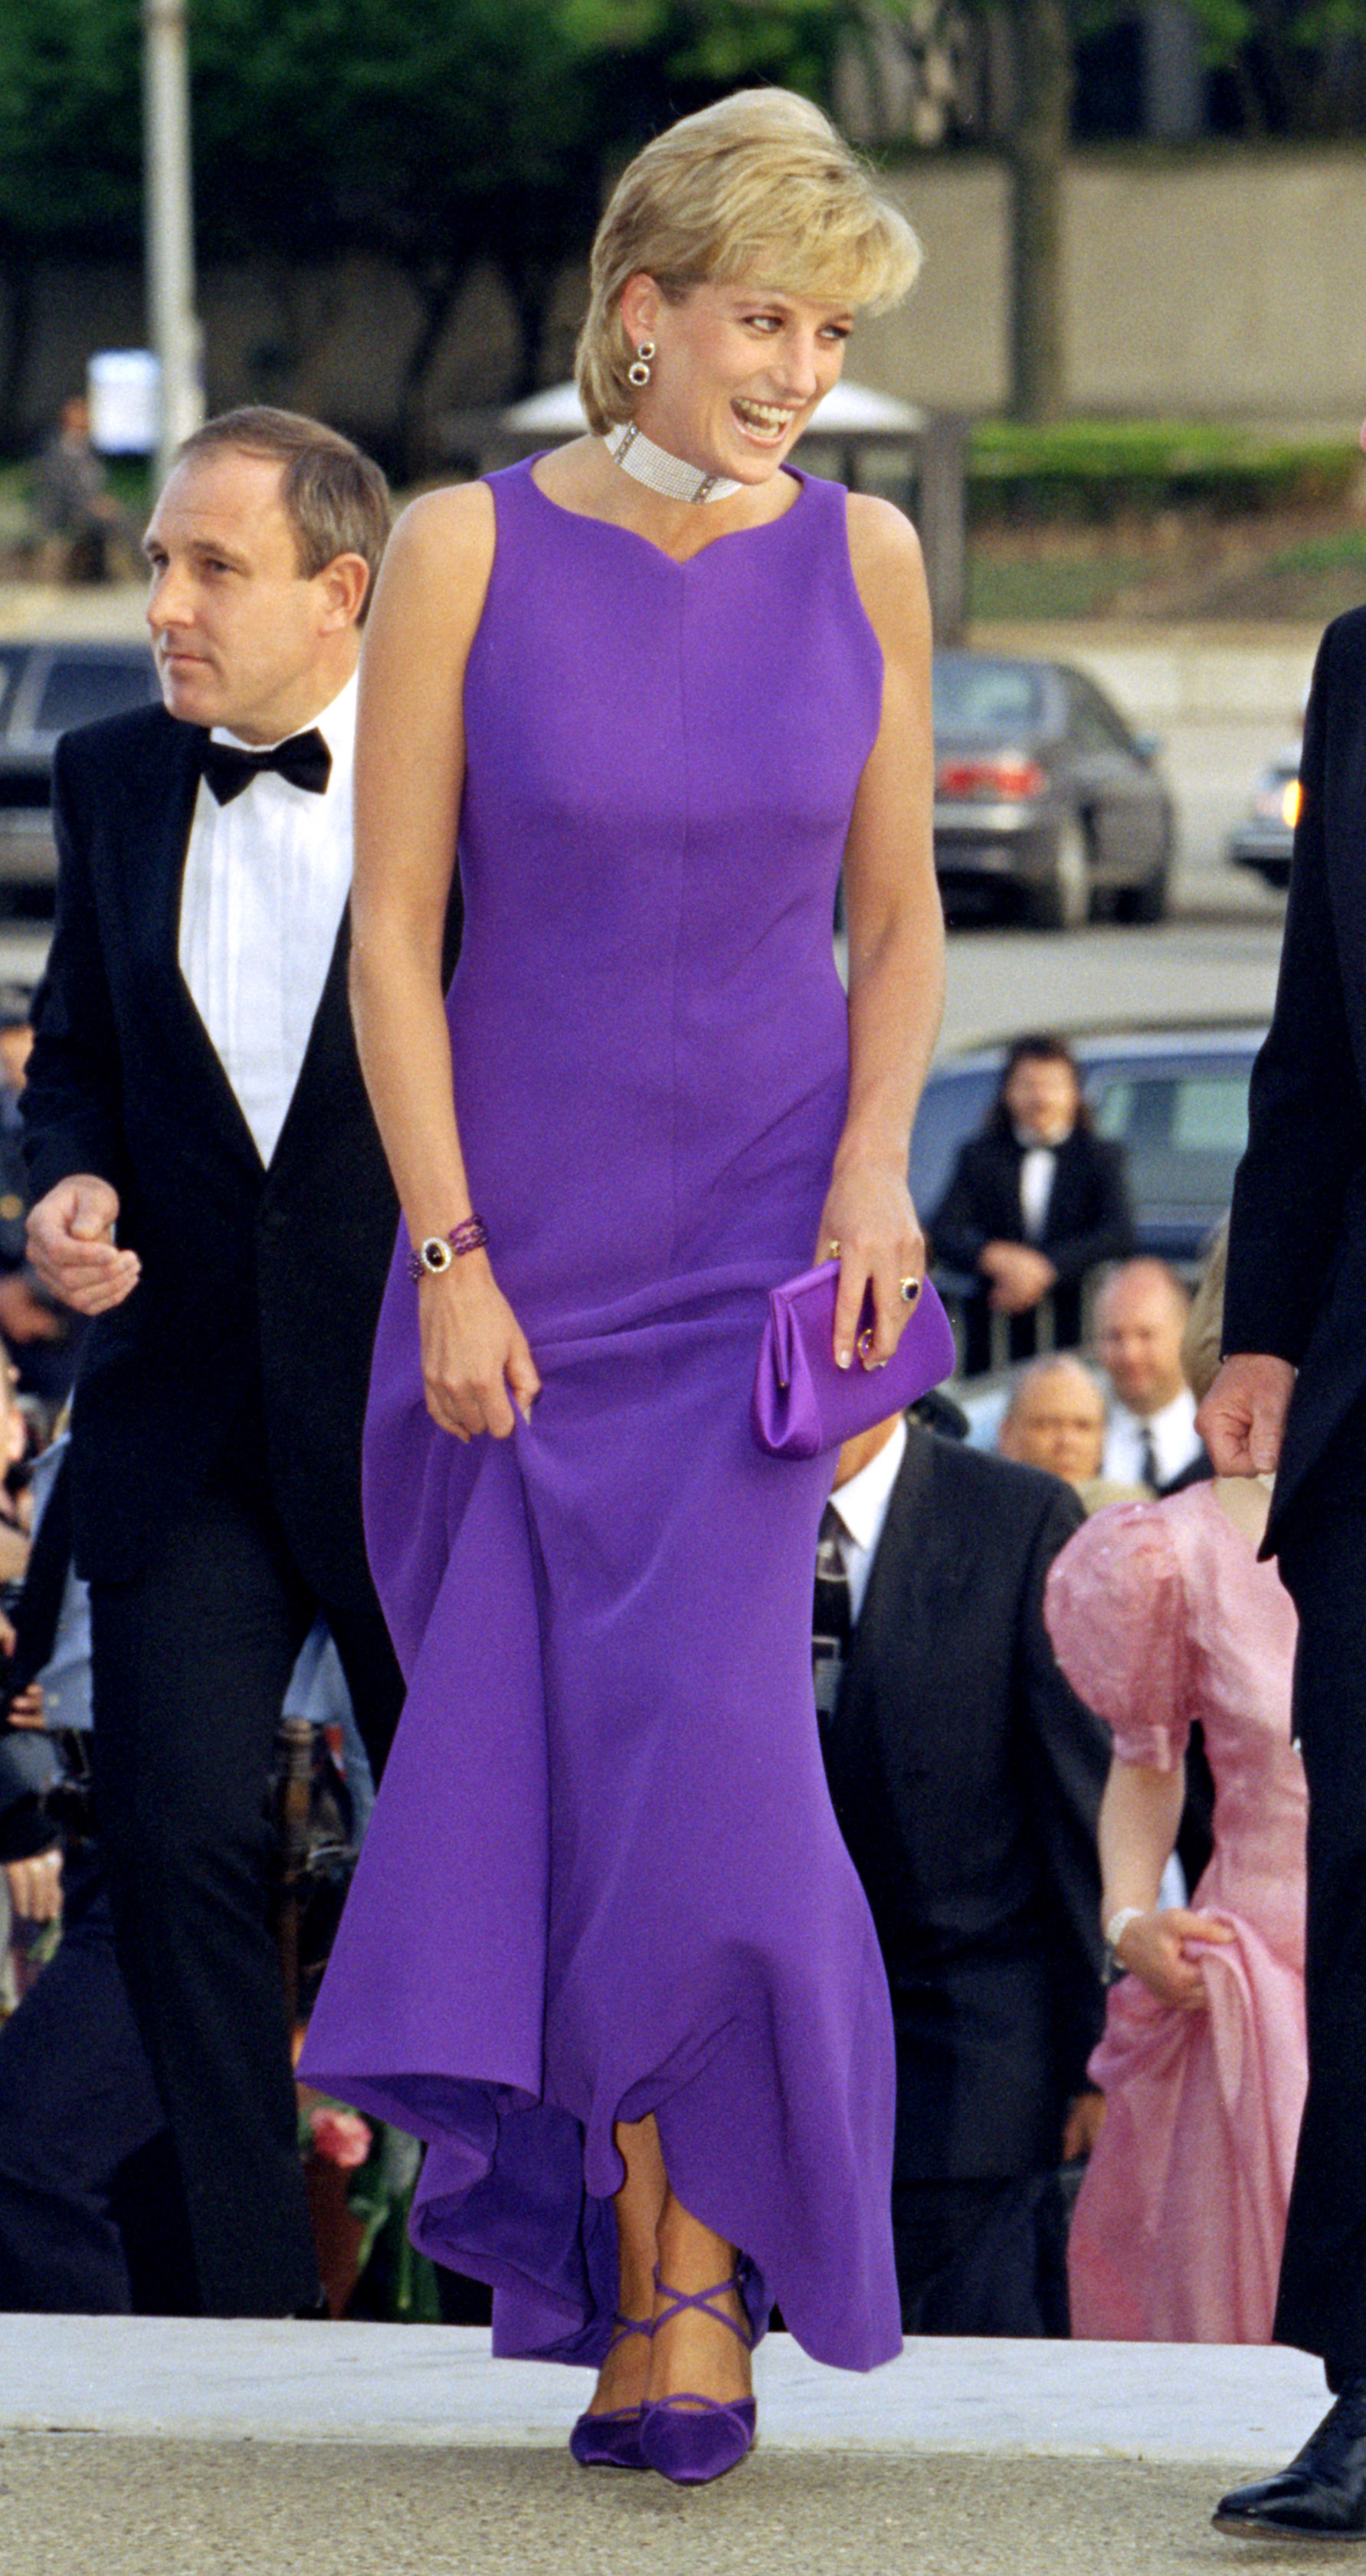 The princess paired a purple gown by Versace with a matching Jimmy Choo bag for an event in 1996.